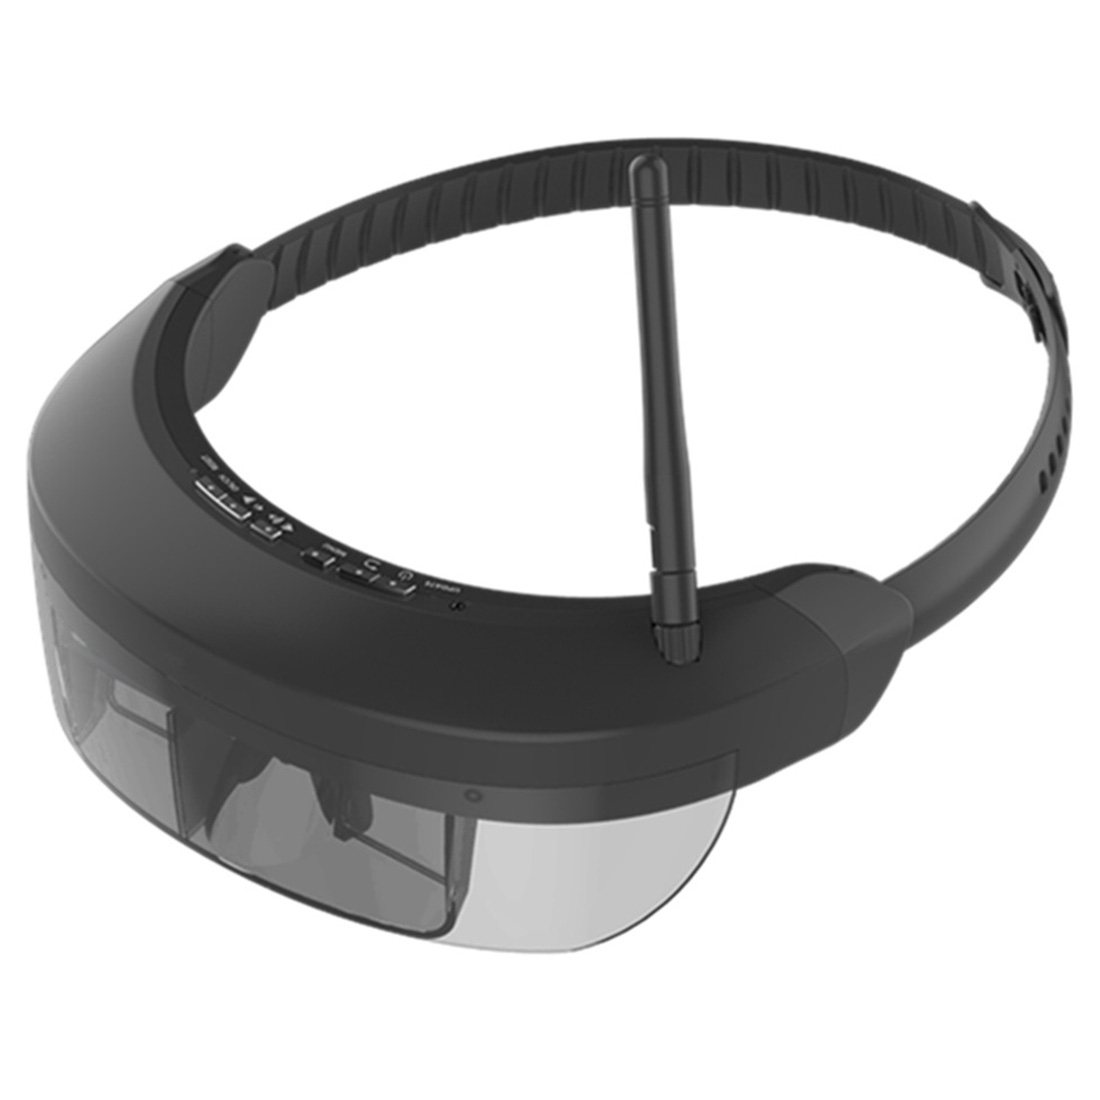 Wireless FPV Goggles 3D Video Glasses Vision-730S with 5.8G 40CH 98 inch Display Private Virtual Theater for FPV Quadcopter 98 inch 3d 2d video glasses hdmi interface xinjiang eye lens mounted display tv aerial